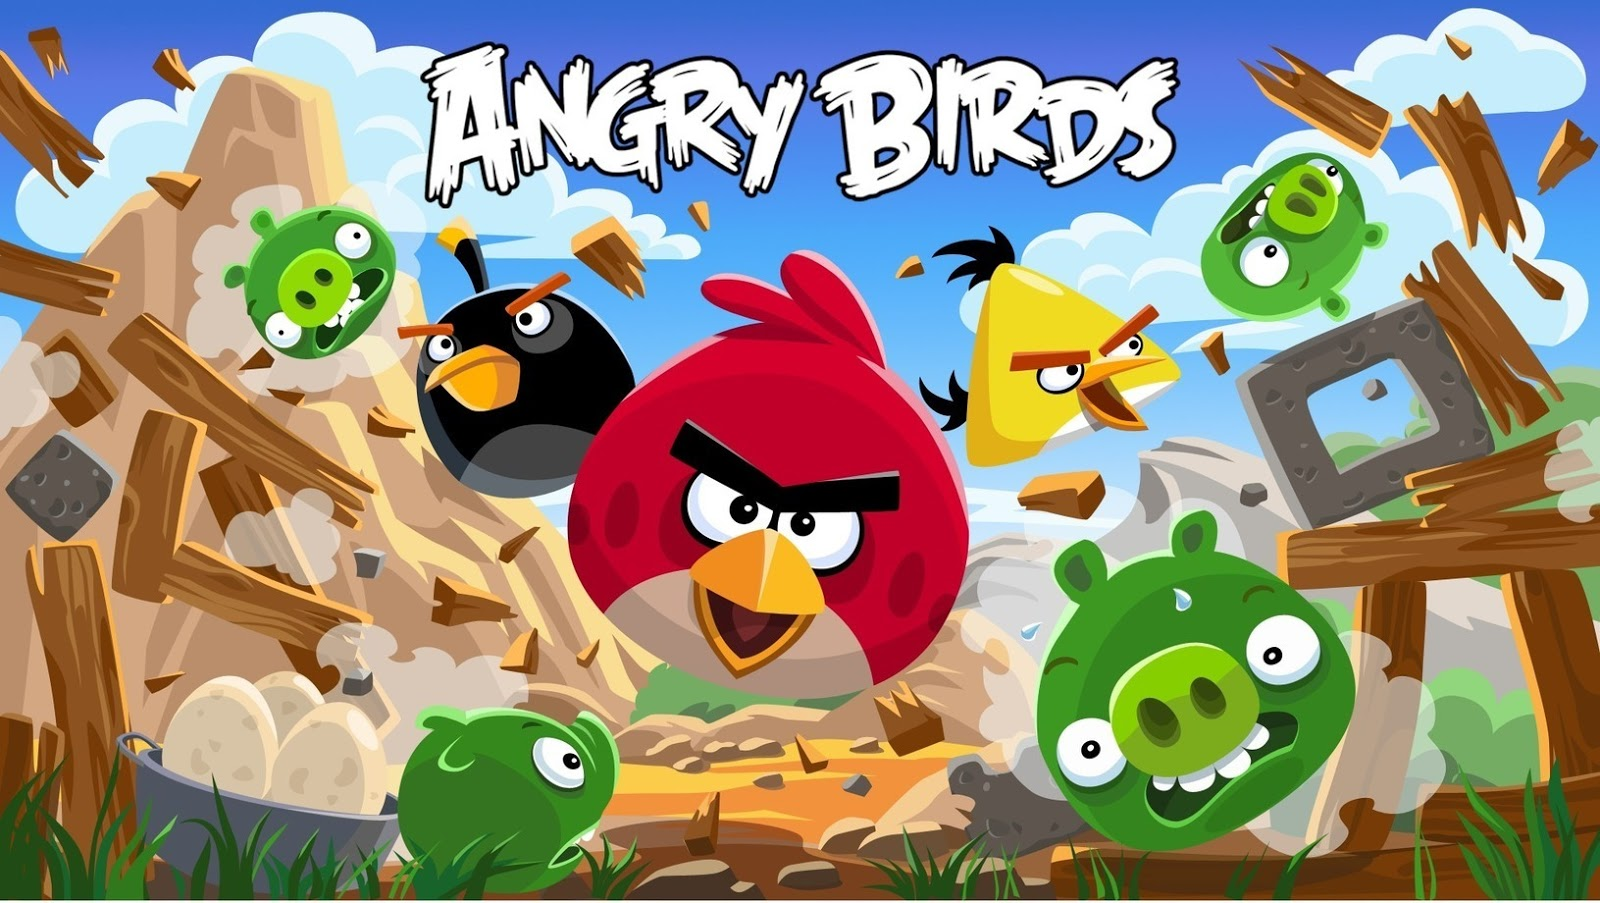 Angry Birds Apk Mod for Android Unlocked - Apk Like